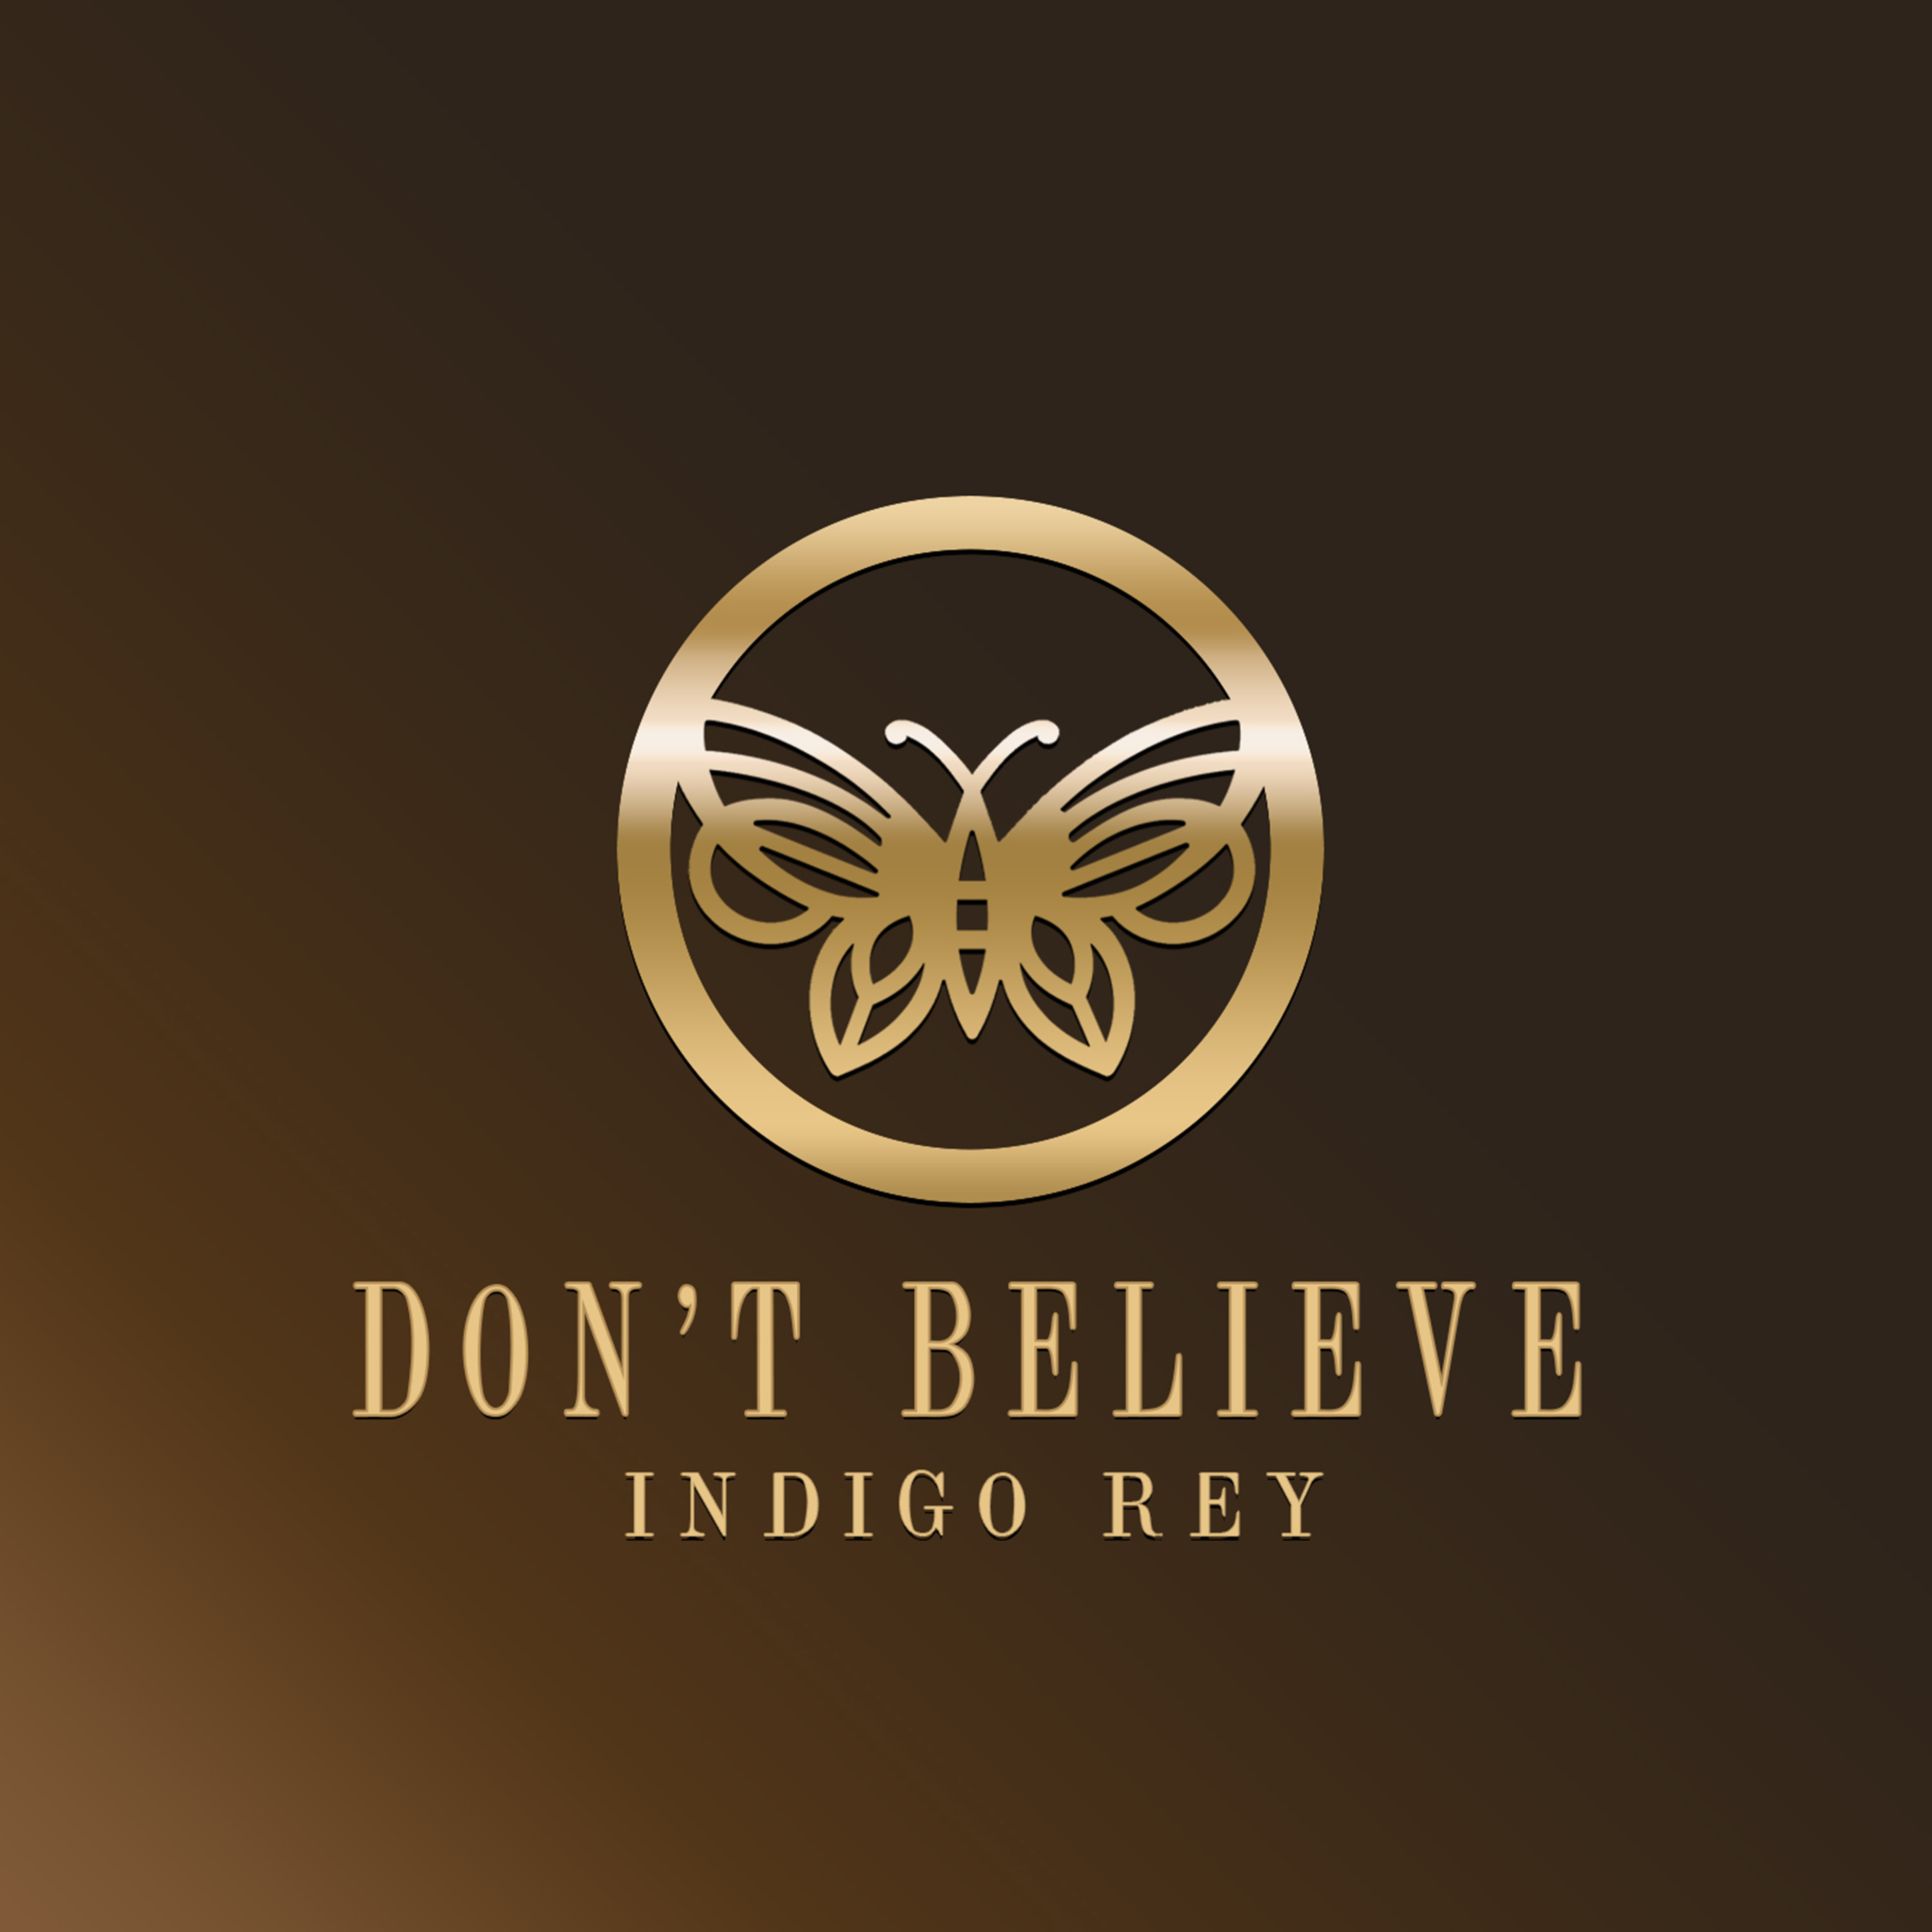 Don't Believe CD Cover